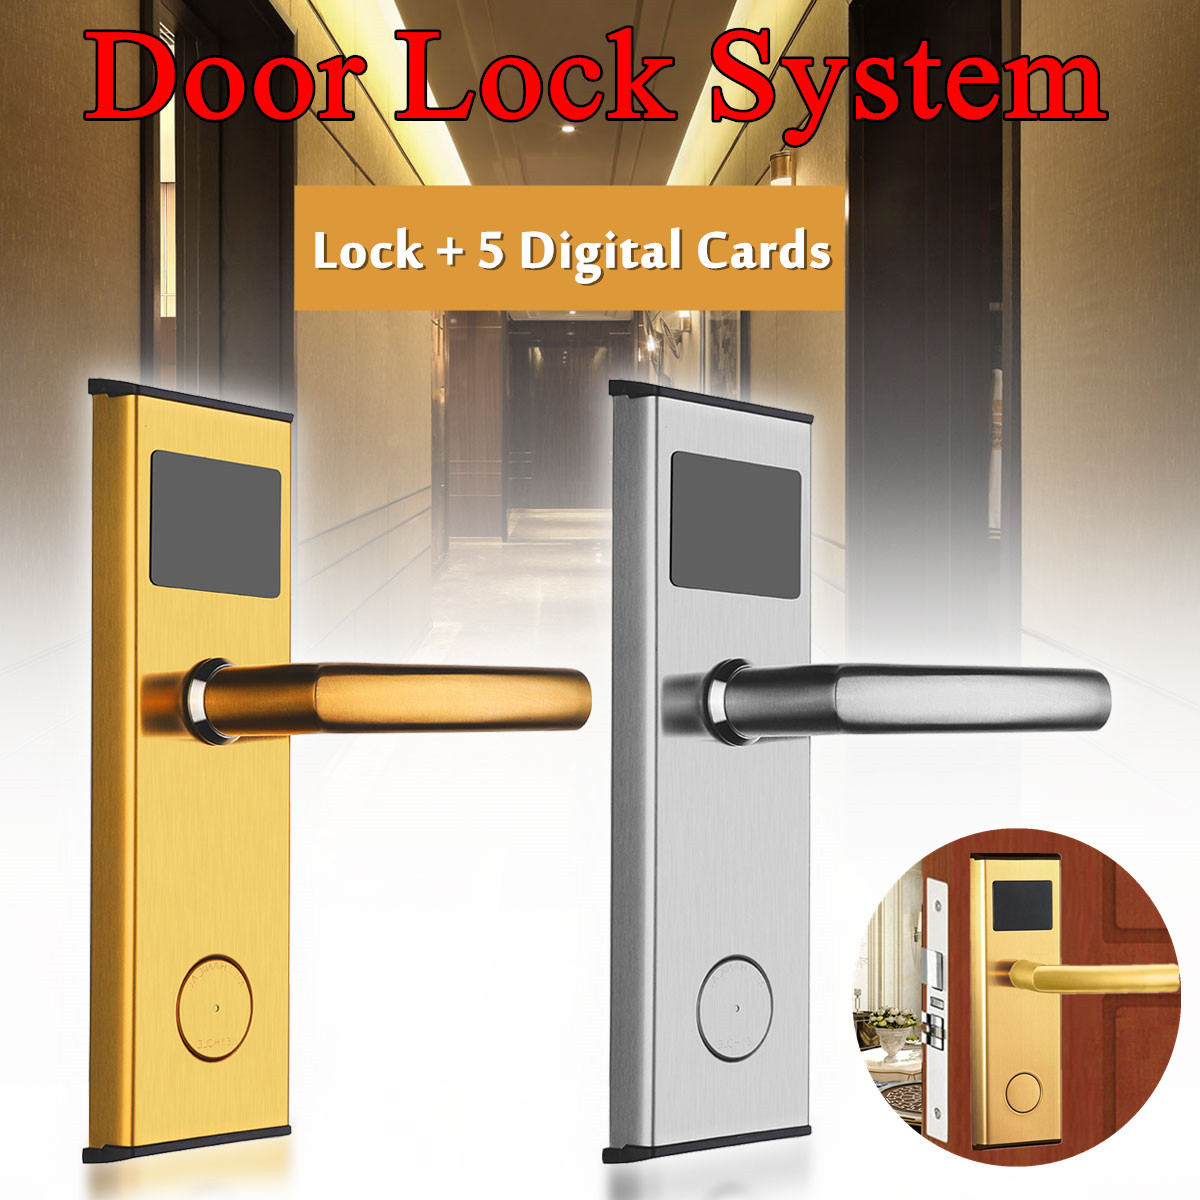 Door Lock System Digital Card Key Unlock Stainless Steel Intelligent RFID Hotel Anti- rust Anti-corrosion Stable Memory AlarmDoor Lock System Digital Card Key Unlock Stainless Steel Intelligent RFID Hotel Anti- rust Anti-corrosion Stable Memory Alarm